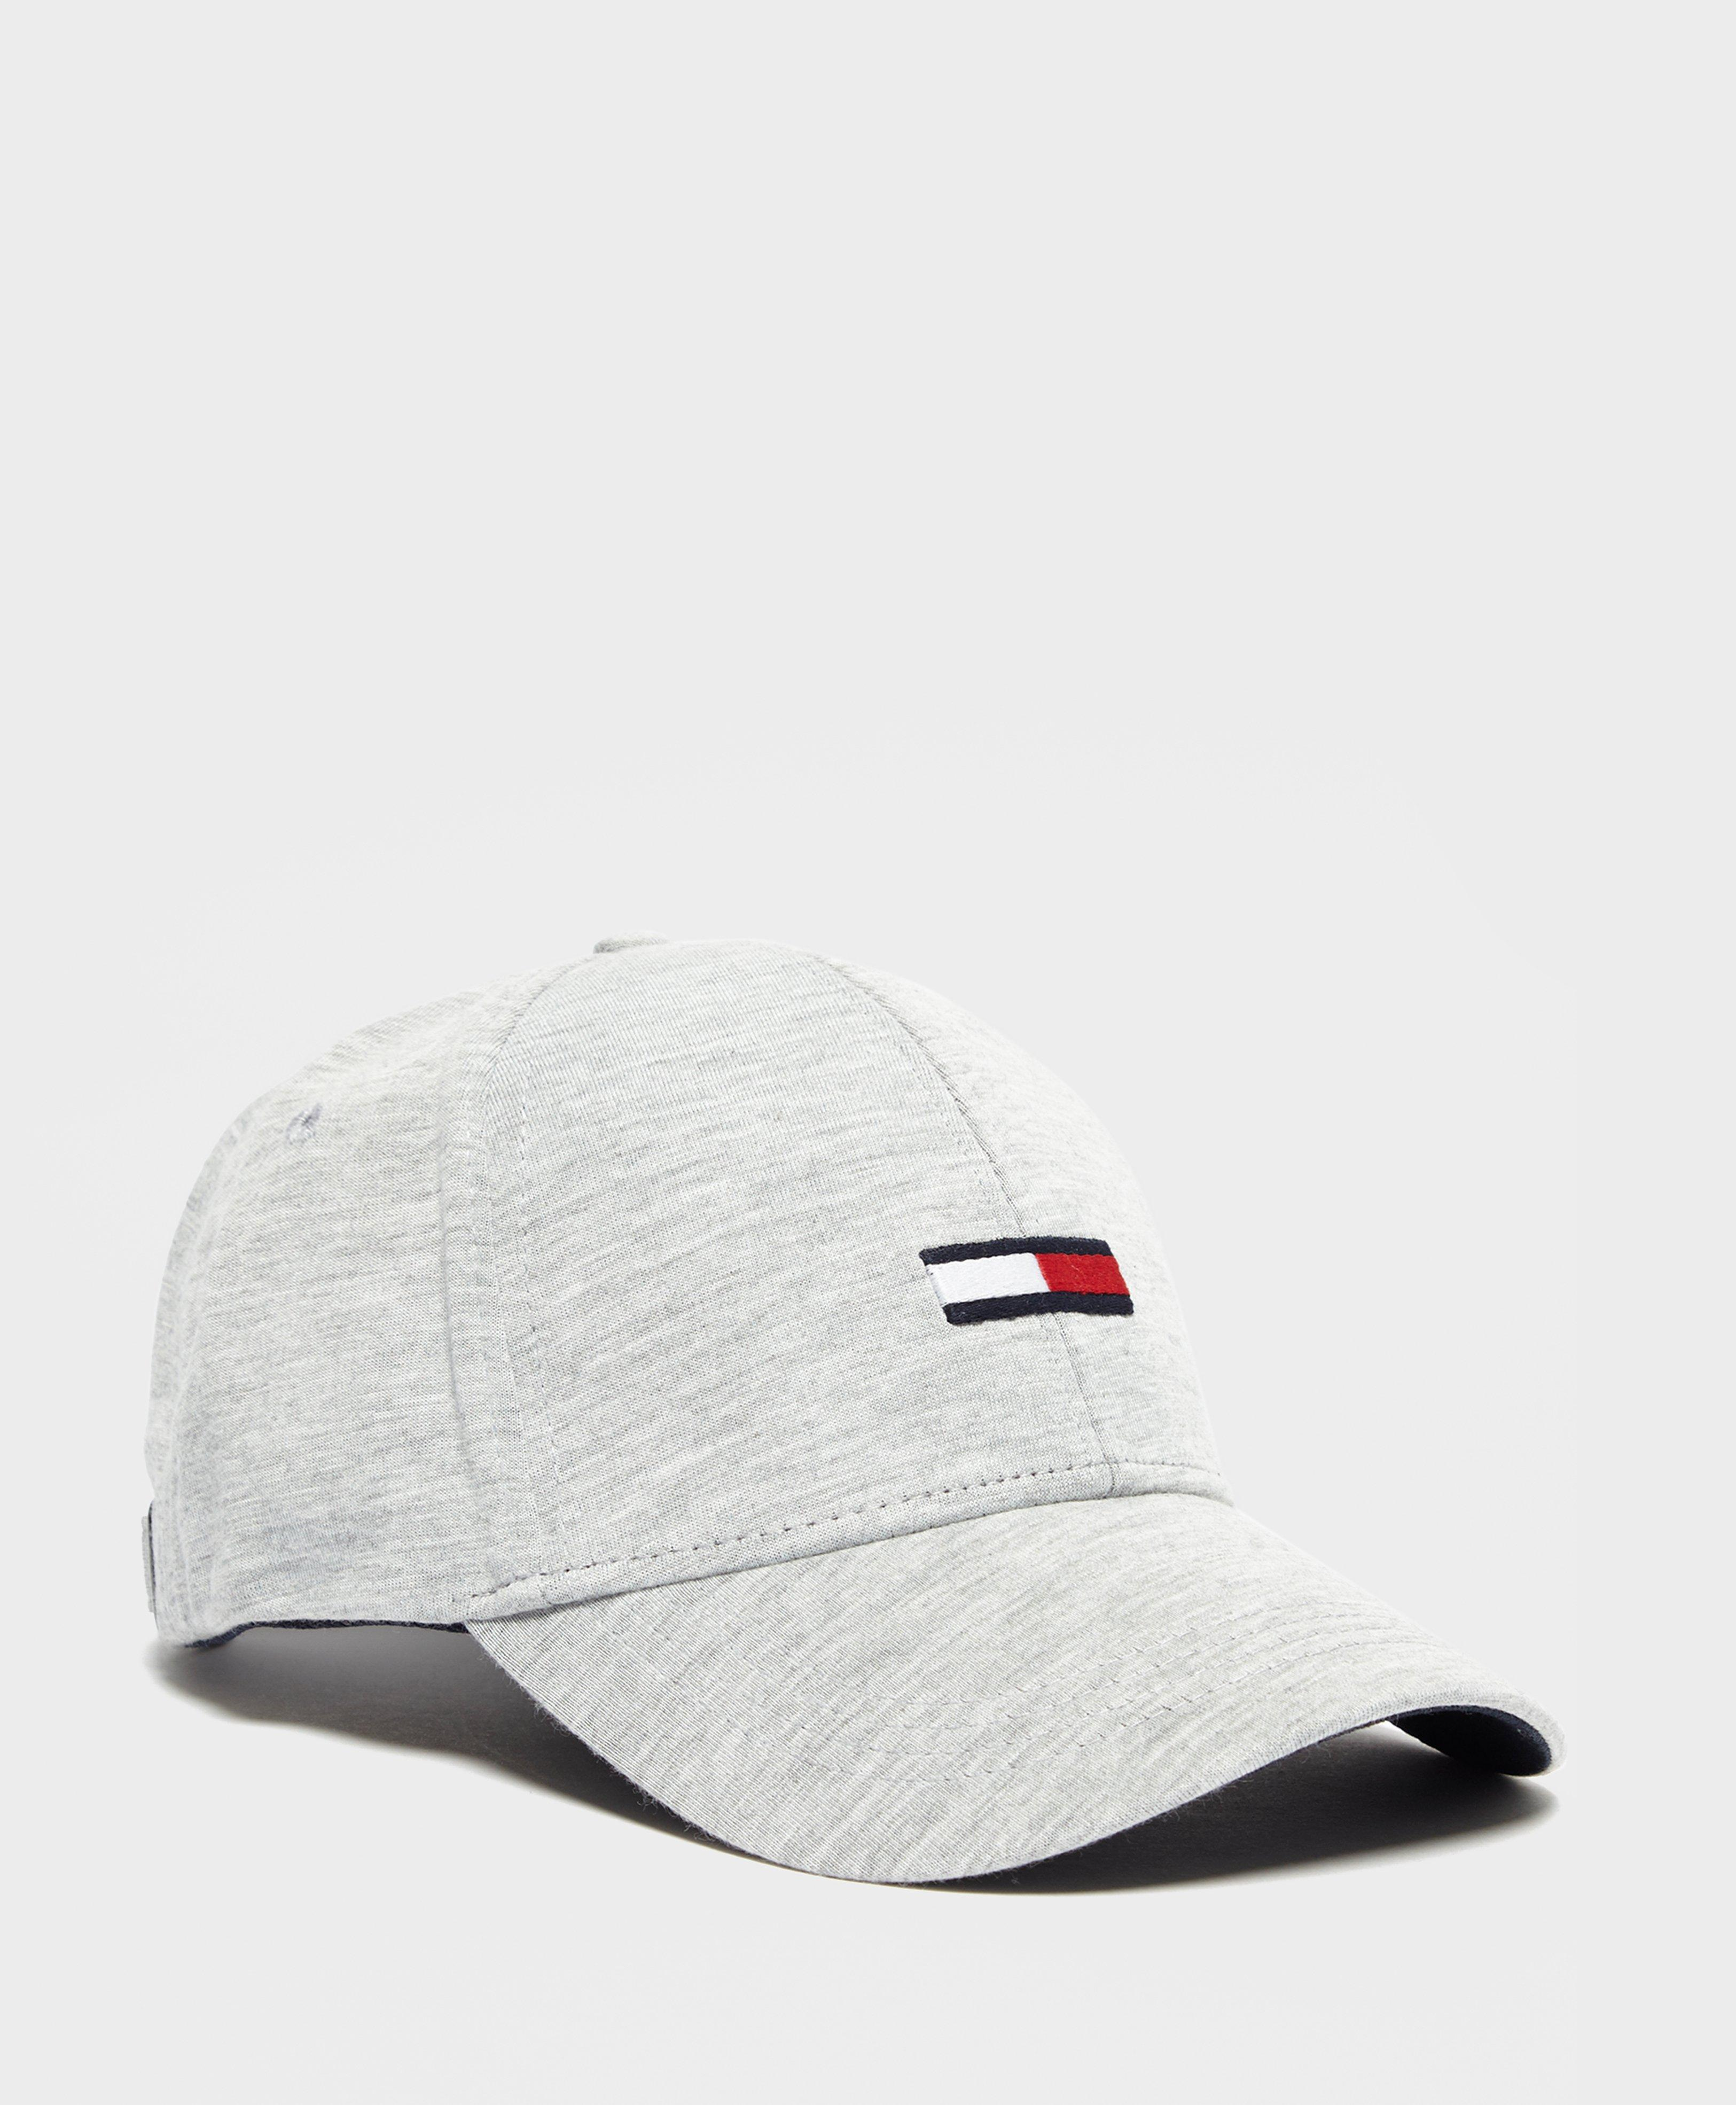 75e2547d8f1 Tommy Hilfiger Jersey Flag Cap in White for Men - Lyst